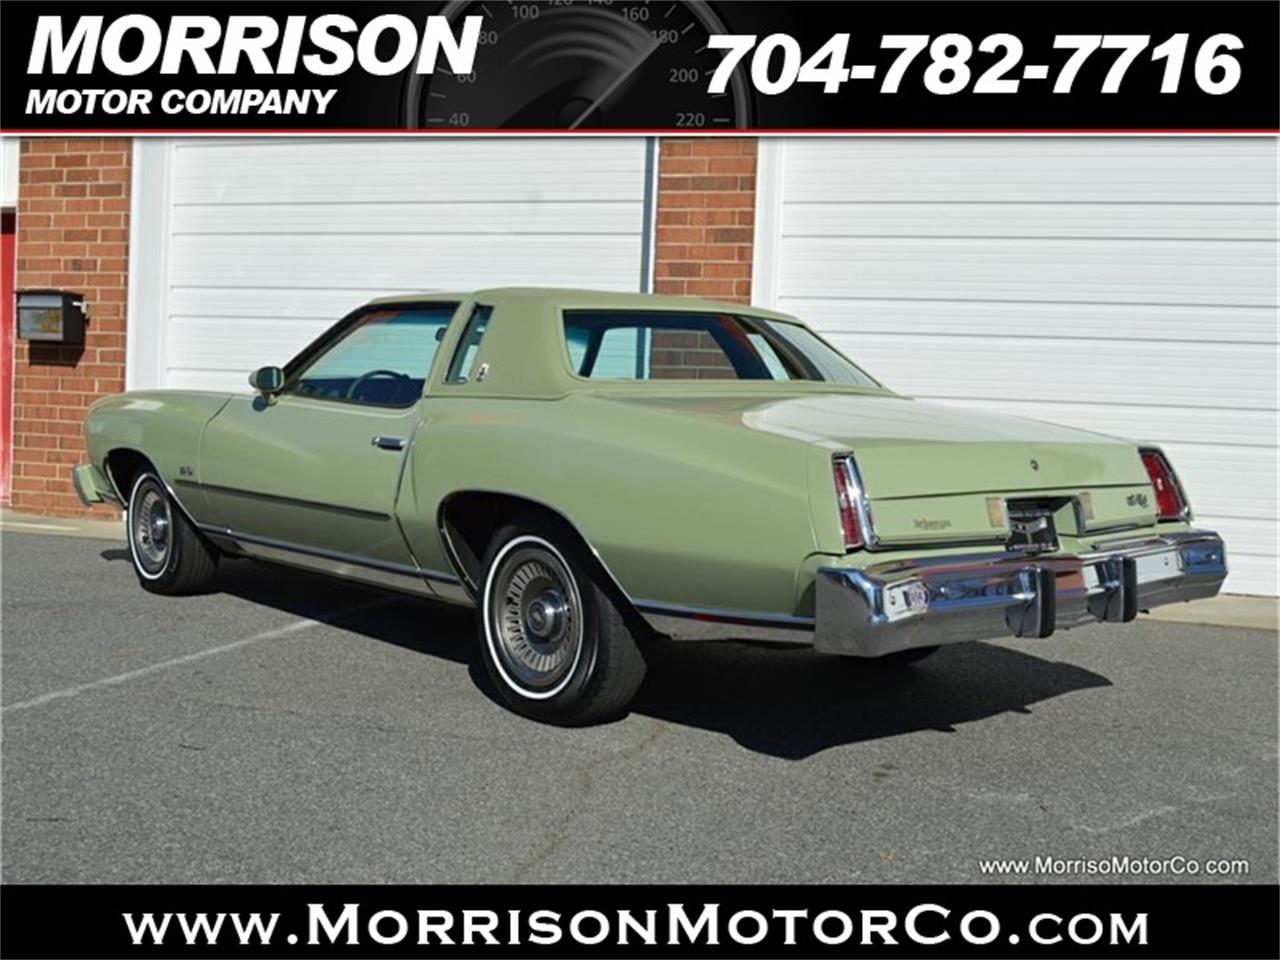 Large Picture of 1974 Chevrolet Monte Carlo - $19,900.00 Offered by Morrison Motor Company - PEZN